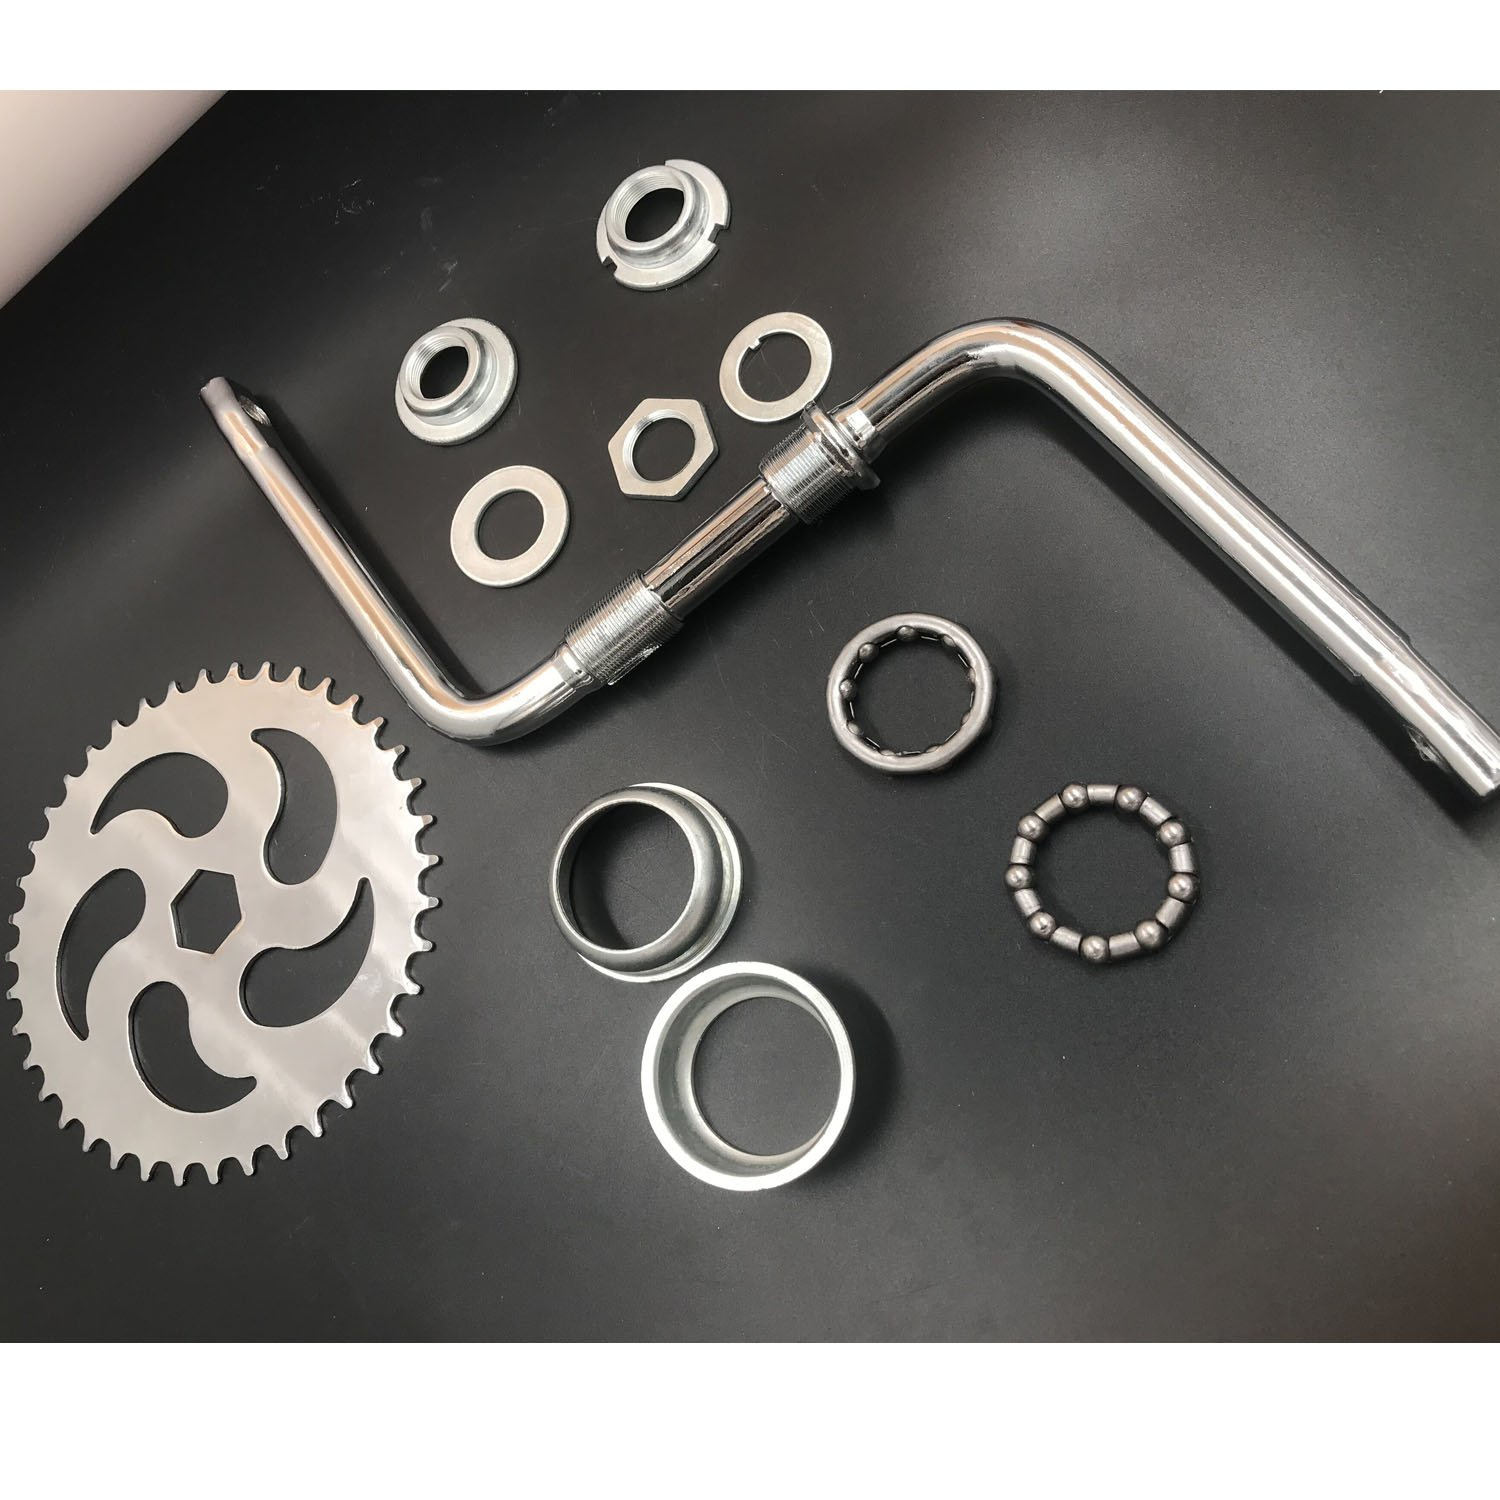 "dolphin1986 2""Cup Wide Pedal Crank Kit, One-Piece Crank, for 2- Stroke Motor,Gas Motorized Bicycle"